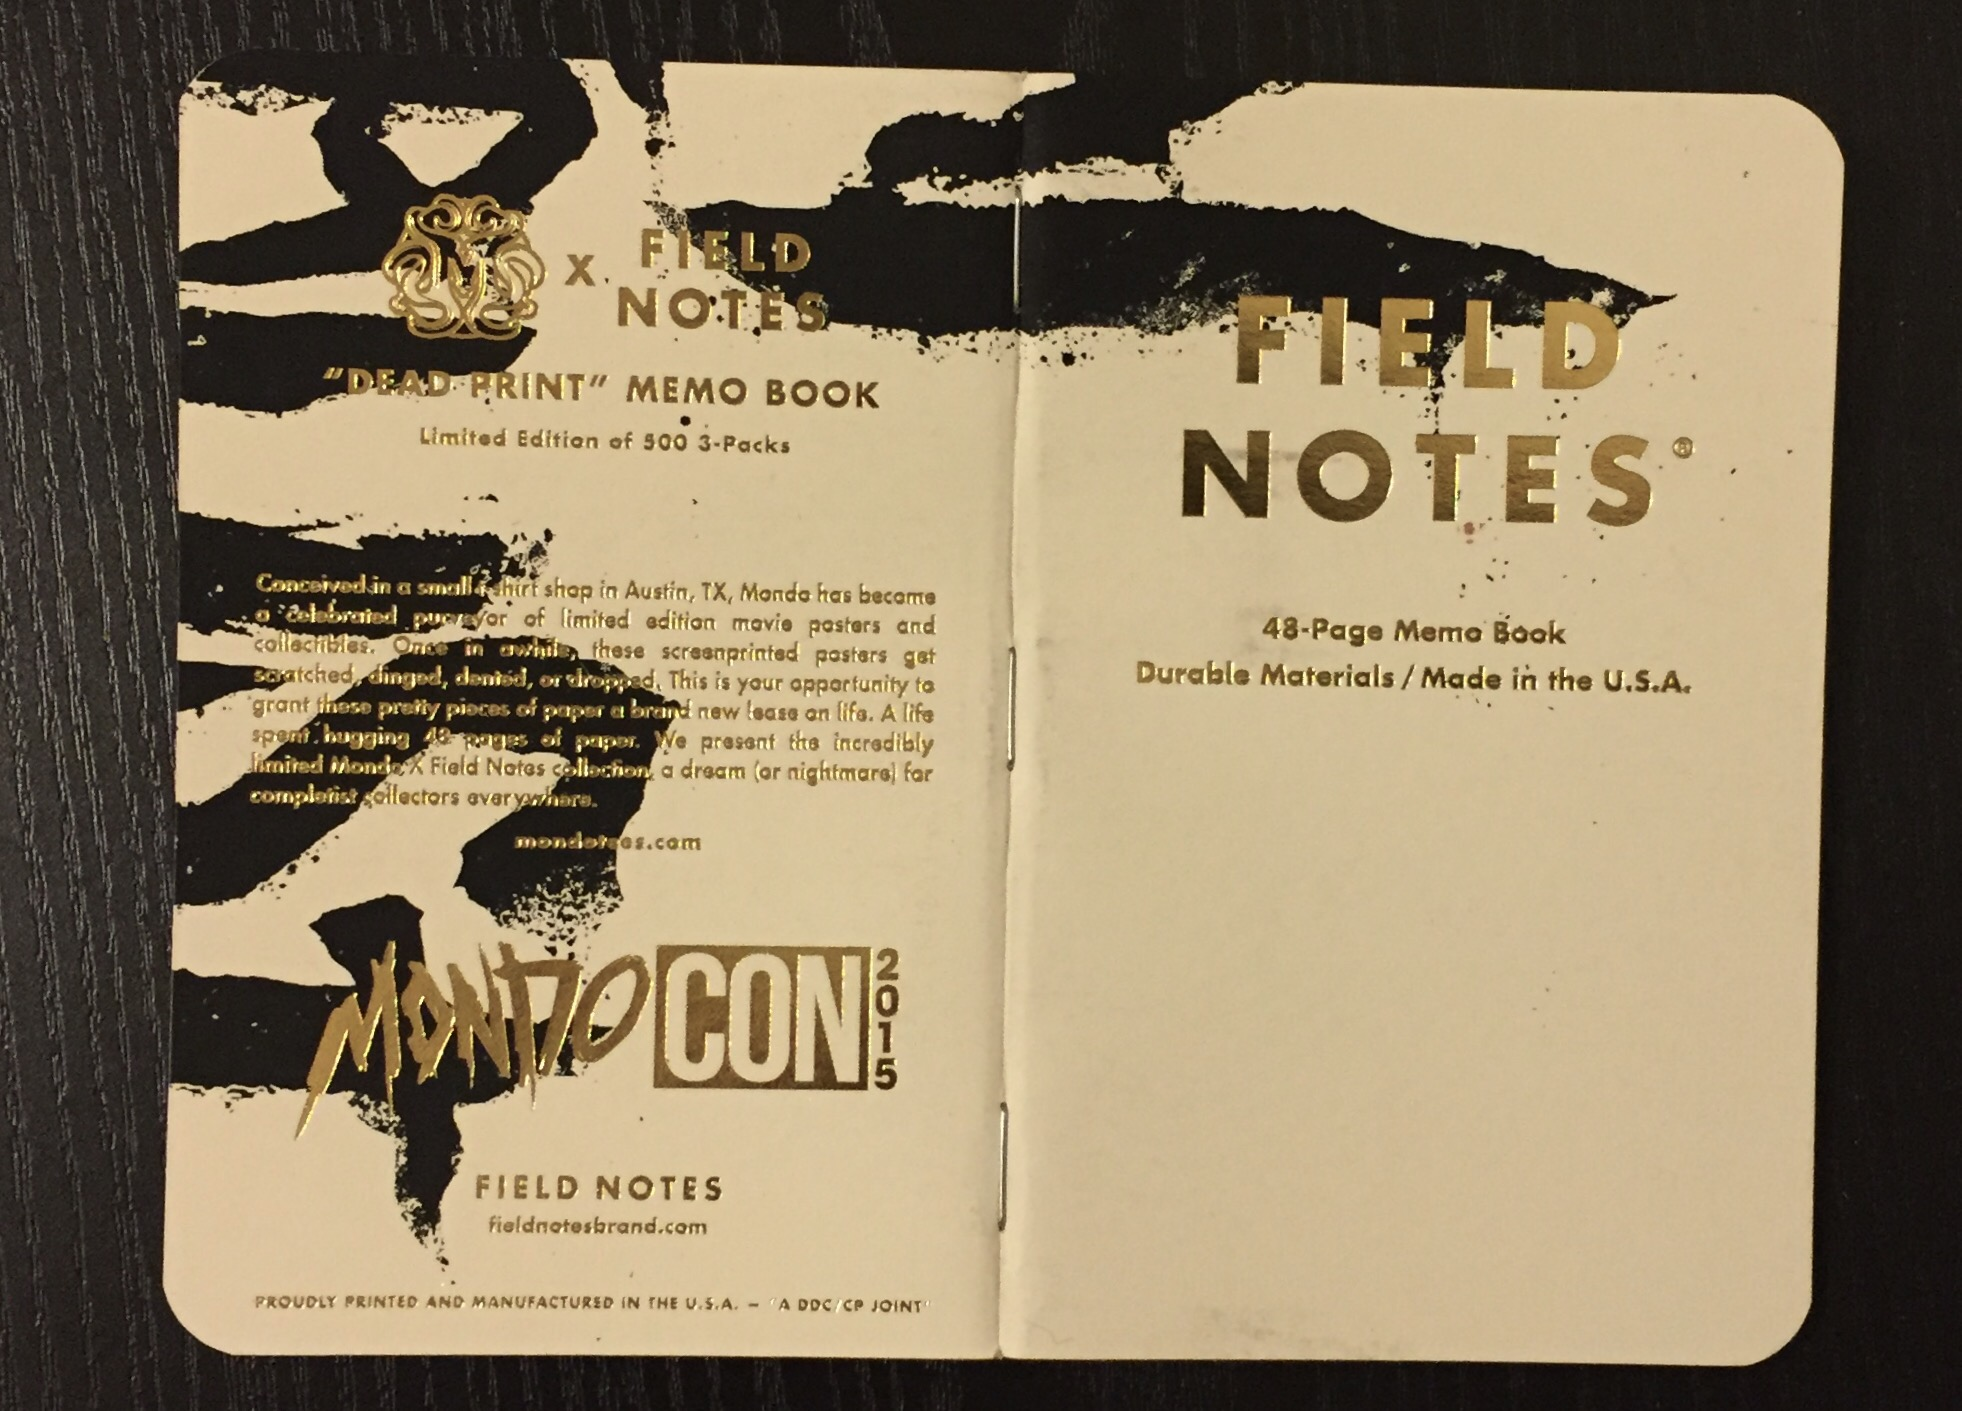 Poster design notes - Notes On Dead Print Field Notes